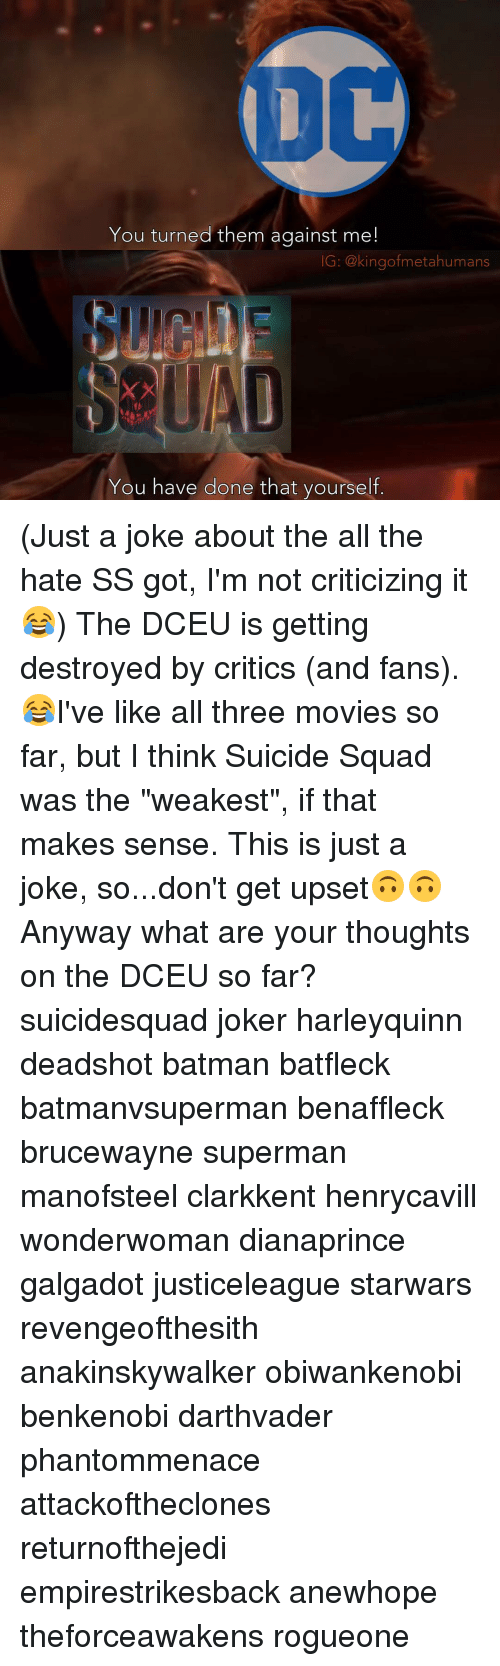 """Batman, Joker, and Memes: You turned them against me  IG: @kingof metahumans  You have done that yourself (Just a joke about the all the hate SS got, I'm not criticizing it😂) The DCEU is getting destroyed by critics (and fans).😂I've like all three movies so far, but I think Suicide Squad was the """"weakest"""", if that makes sense. This is just a joke, so...don't get upset🙃🙃 Anyway what are your thoughts on the DCEU so far? suicidesquad joker harleyquinn deadshot batman batfleck batmanvsuperman benaffleck brucewayne superman manofsteel clarkkent henrycavill wonderwoman dianaprince galgadot justiceleague starwars revengeofthesith anakinskywalker obiwankenobi benkenobi darthvader phantommenace attackoftheclones returnofthejedi empirestrikesback anewhope theforceawakens rogueone"""